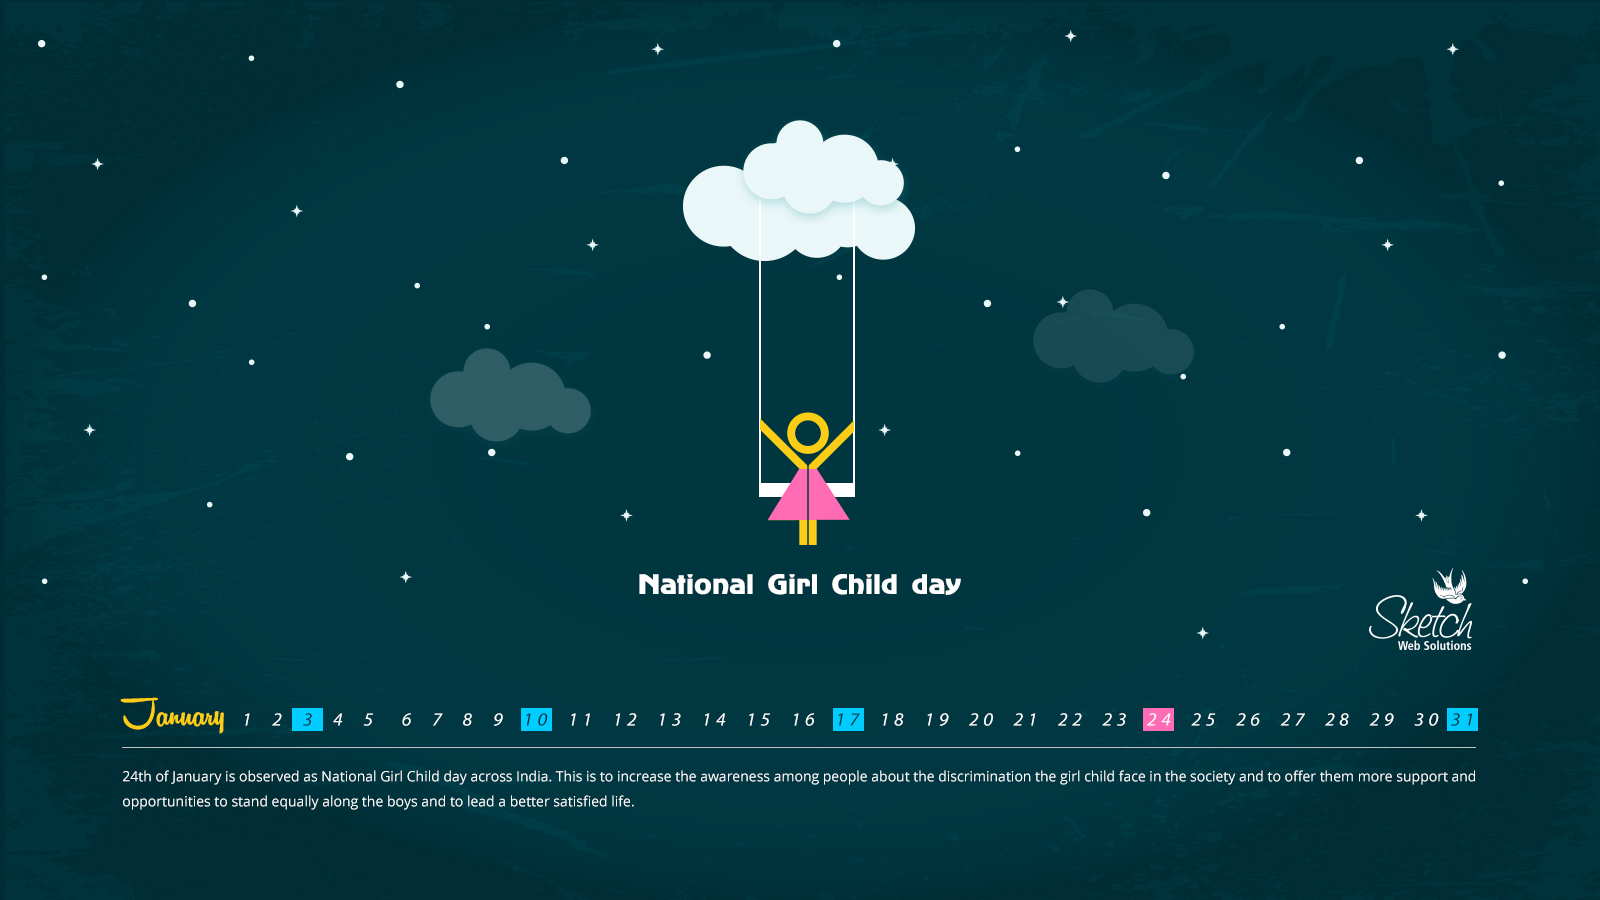 National Girl Child day 16